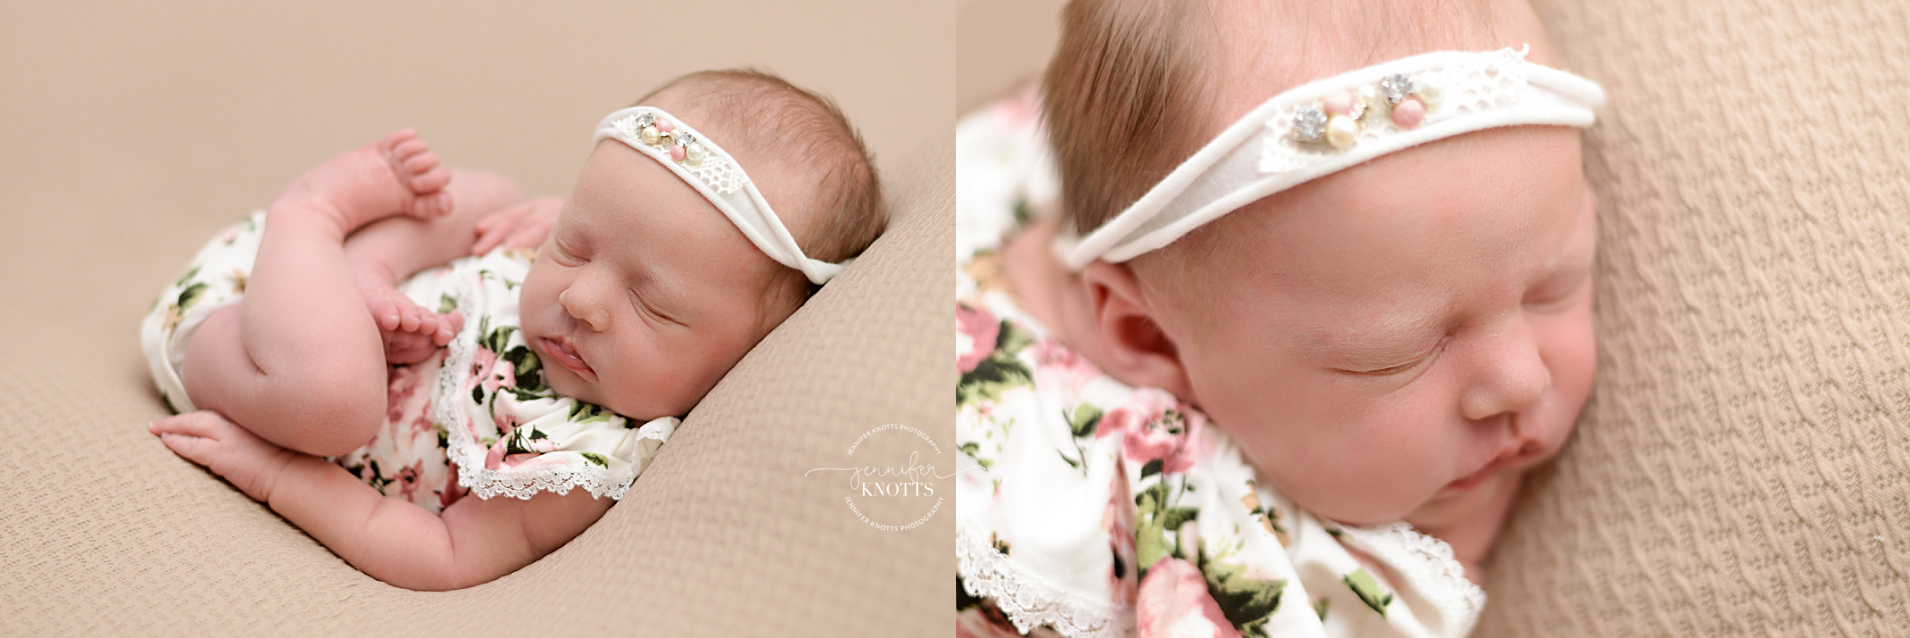 Wilmington photographer captures newborn girl sleeping on tan background wearing floral romper